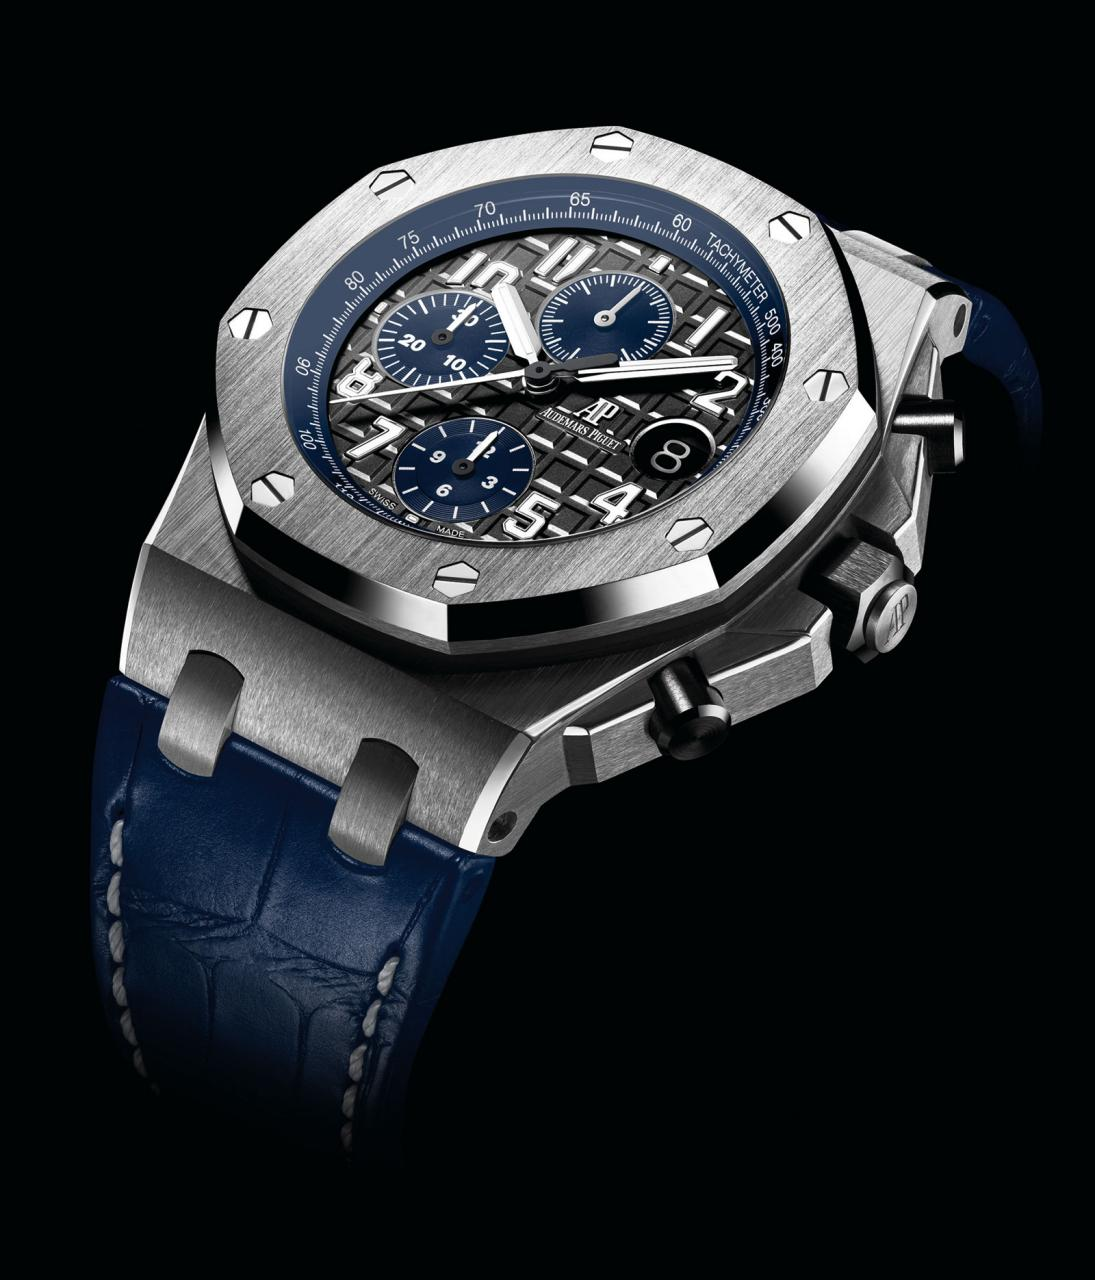 Audemars Piguet Royal Oak Offshore 26470ST-OO-A028CR